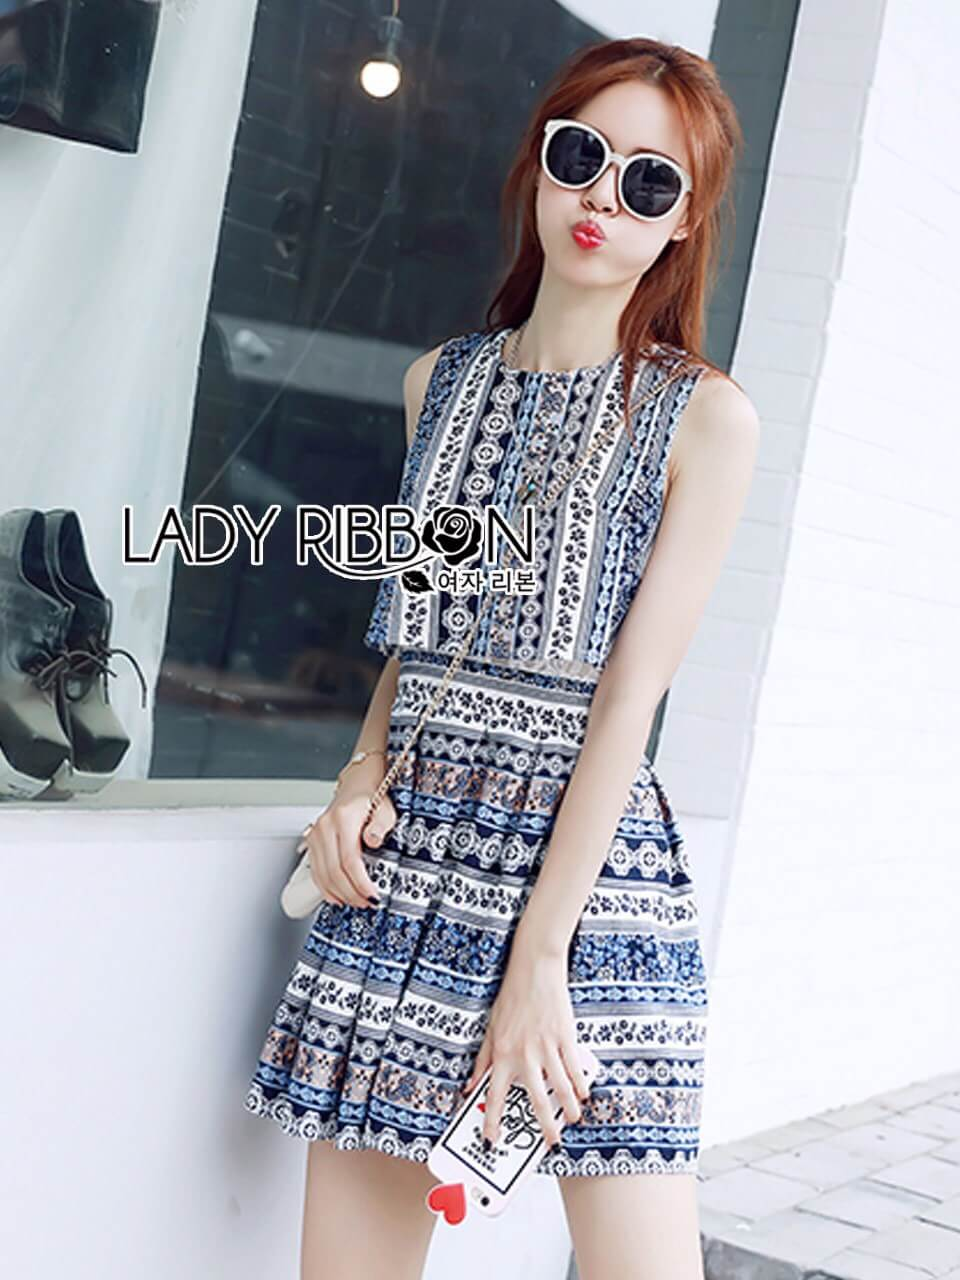 &#x1F380 Lady Ribbon's Made &#x1F380 Lady Alisa Casual Sunday Mixed Flower Printed Dress and Cropped Top